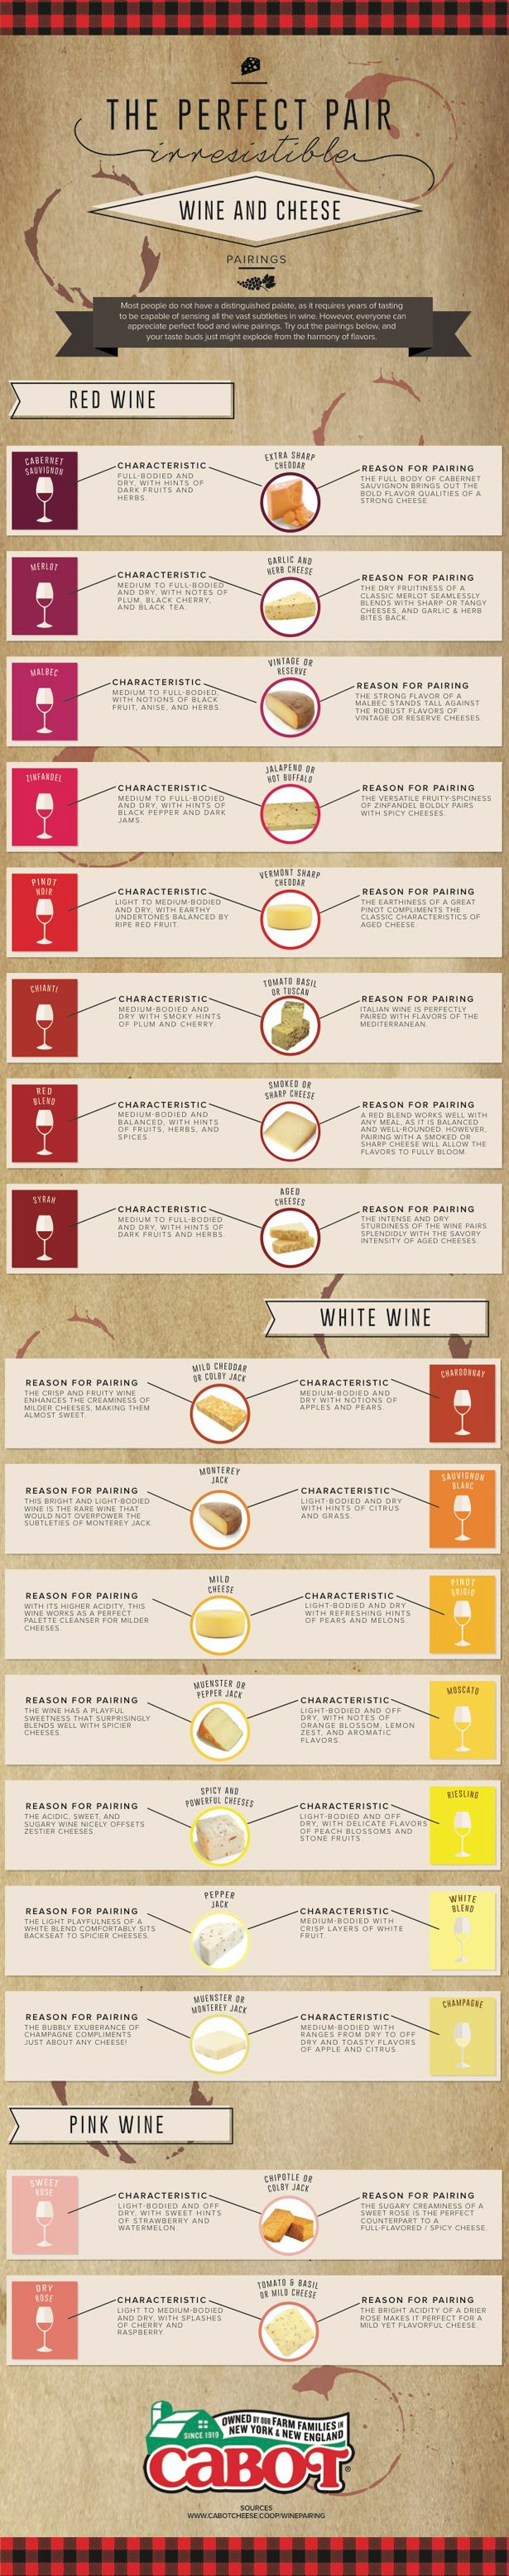 Guide To Pairing Wine And Cheese Infographic